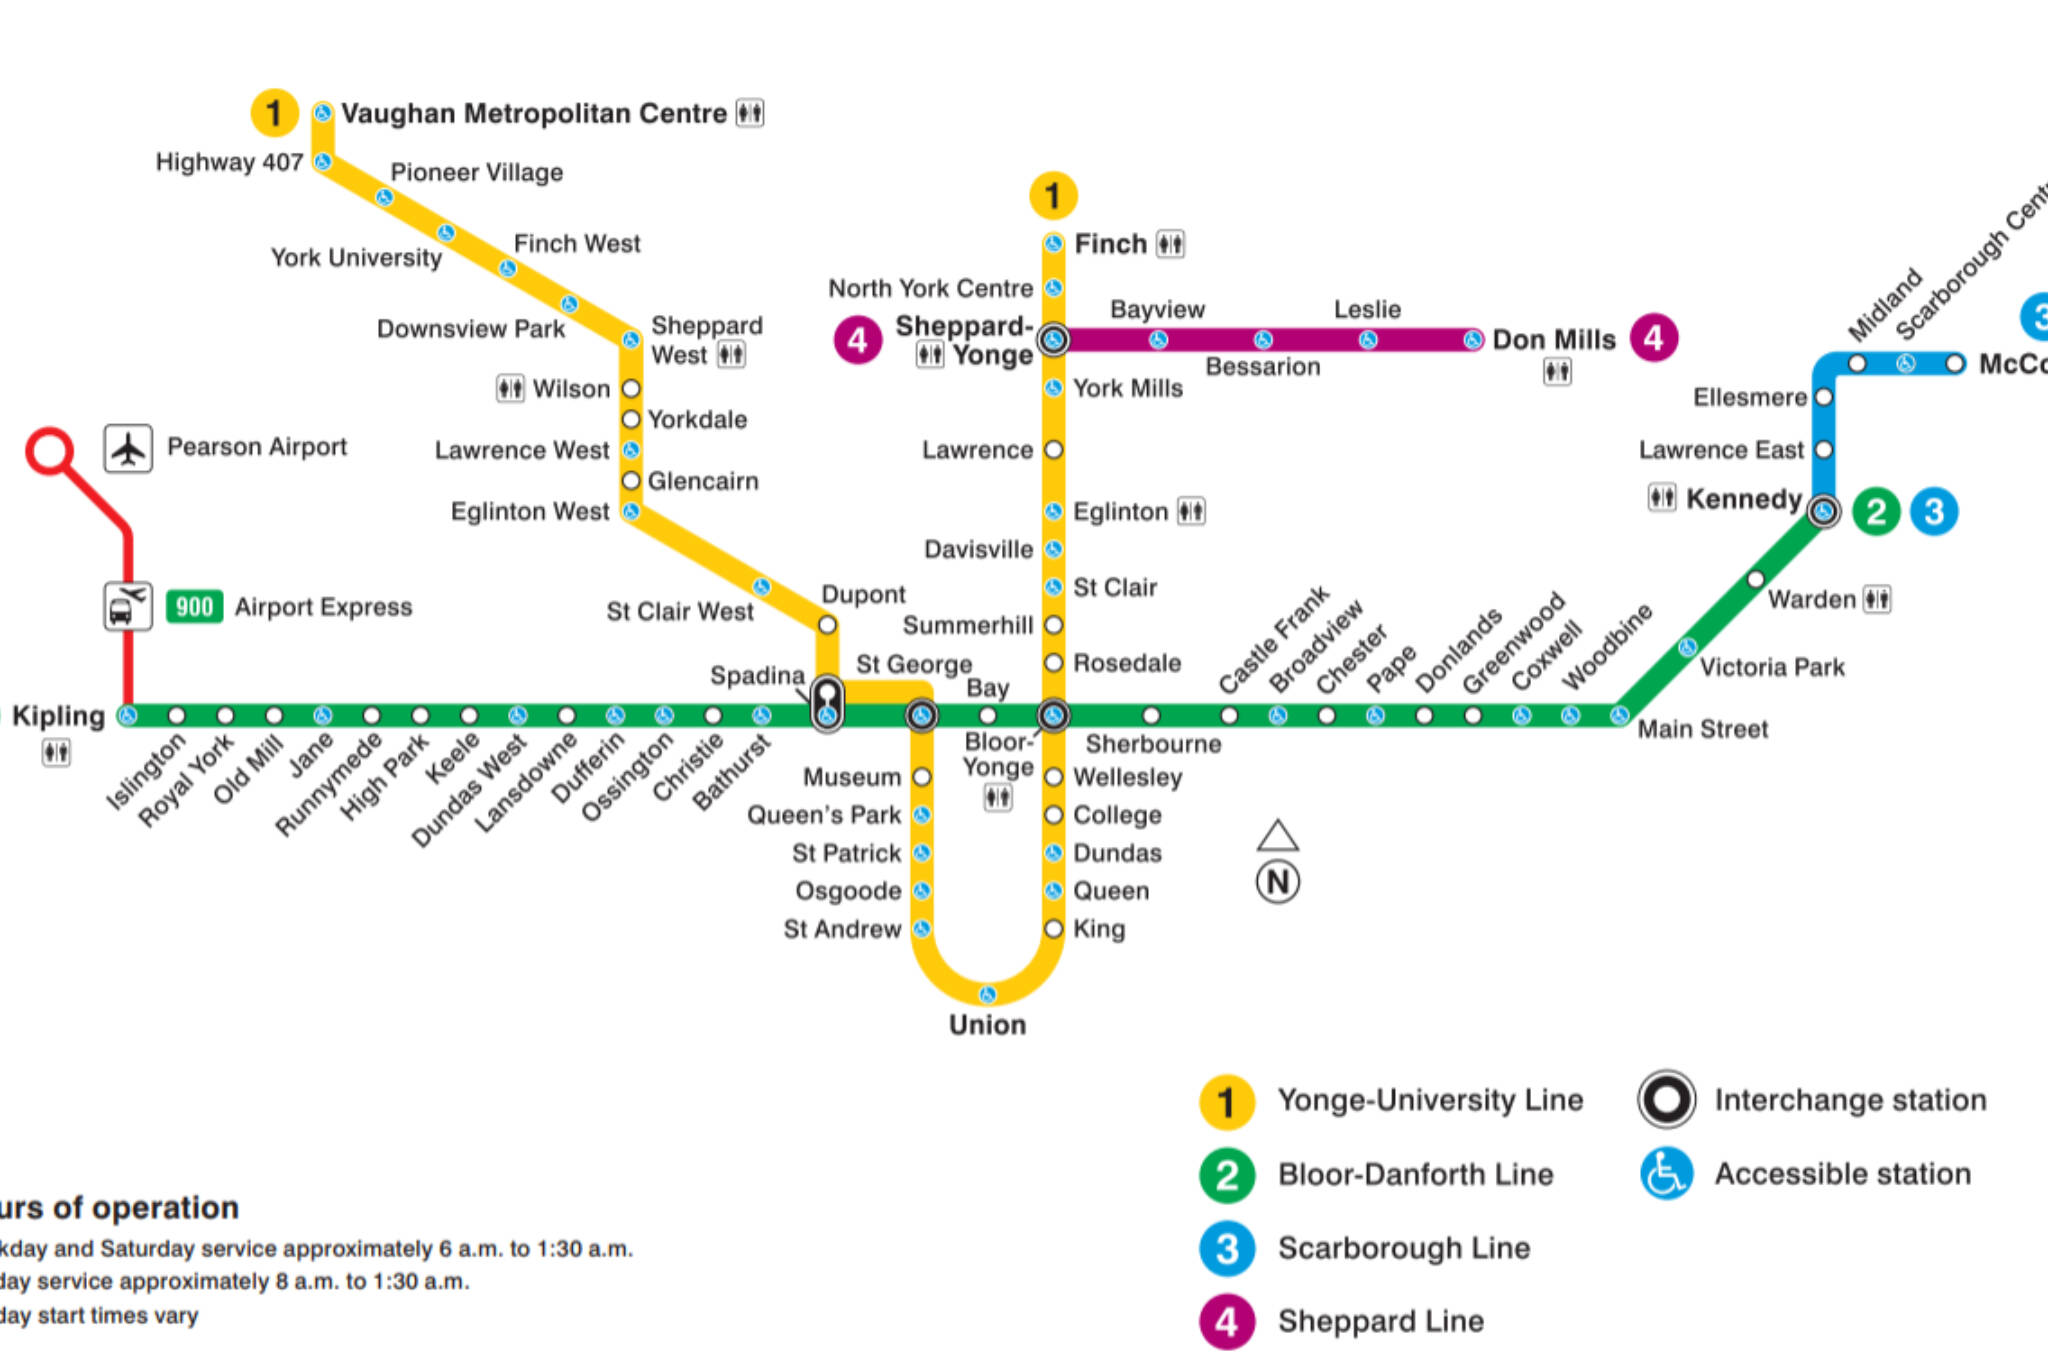 Metro Toronto Map The evolution of the TTC subway map